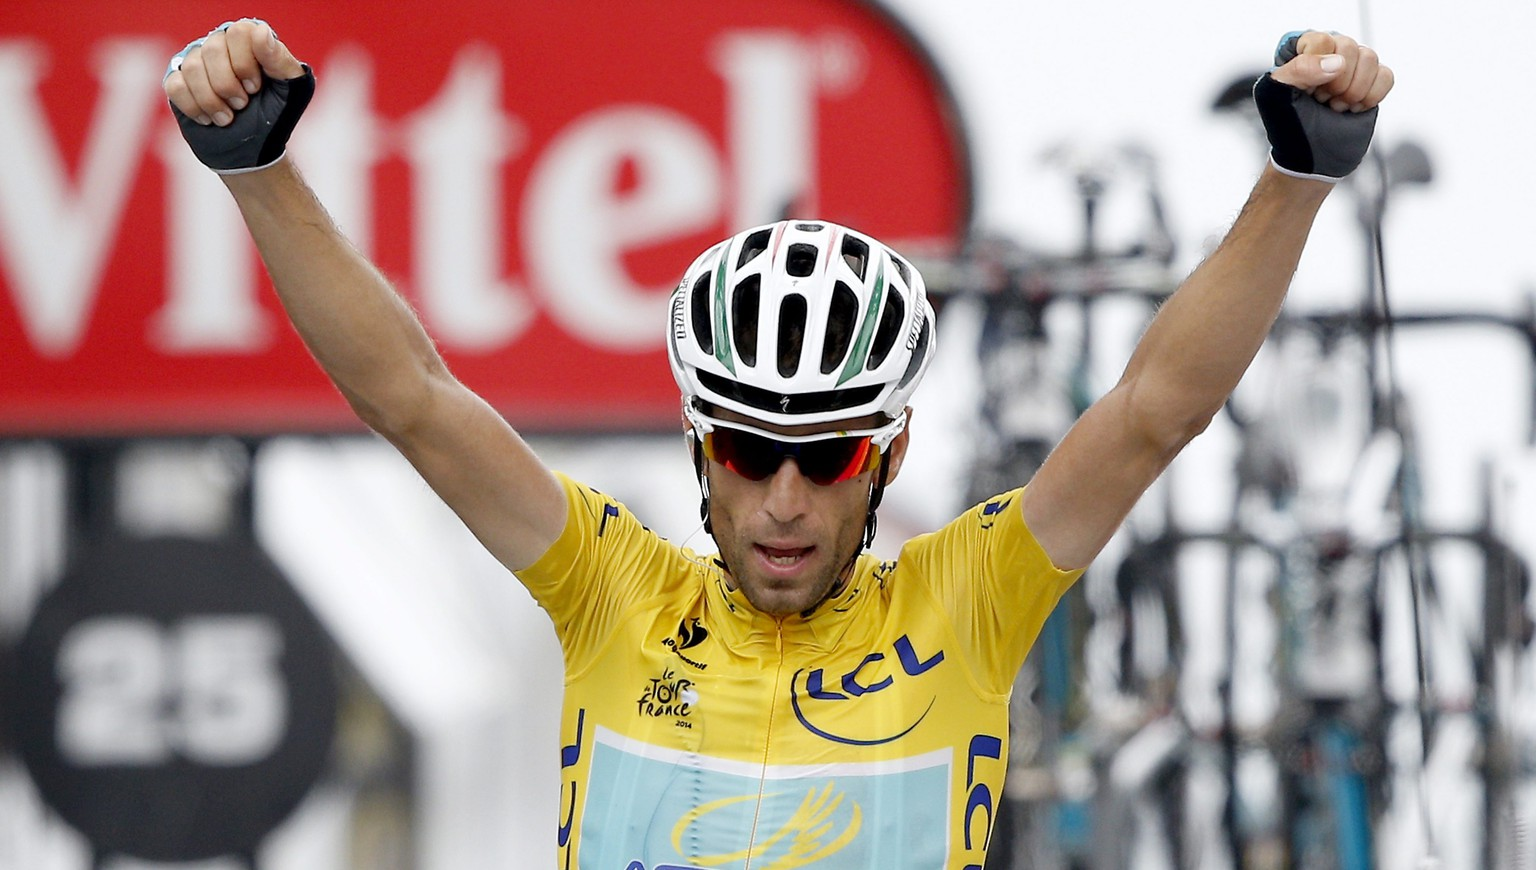 epa04328989 The overall leader, Astana Procycling team rider Vincenzo Nibali of Italy celebrates as he crosses the finish line to win the 18th stage of the 101st Tour de France cycling race, over 145.5 km from Pau to Hautacam, in France, 24 July 2014.  EPA/YOAN VALAT